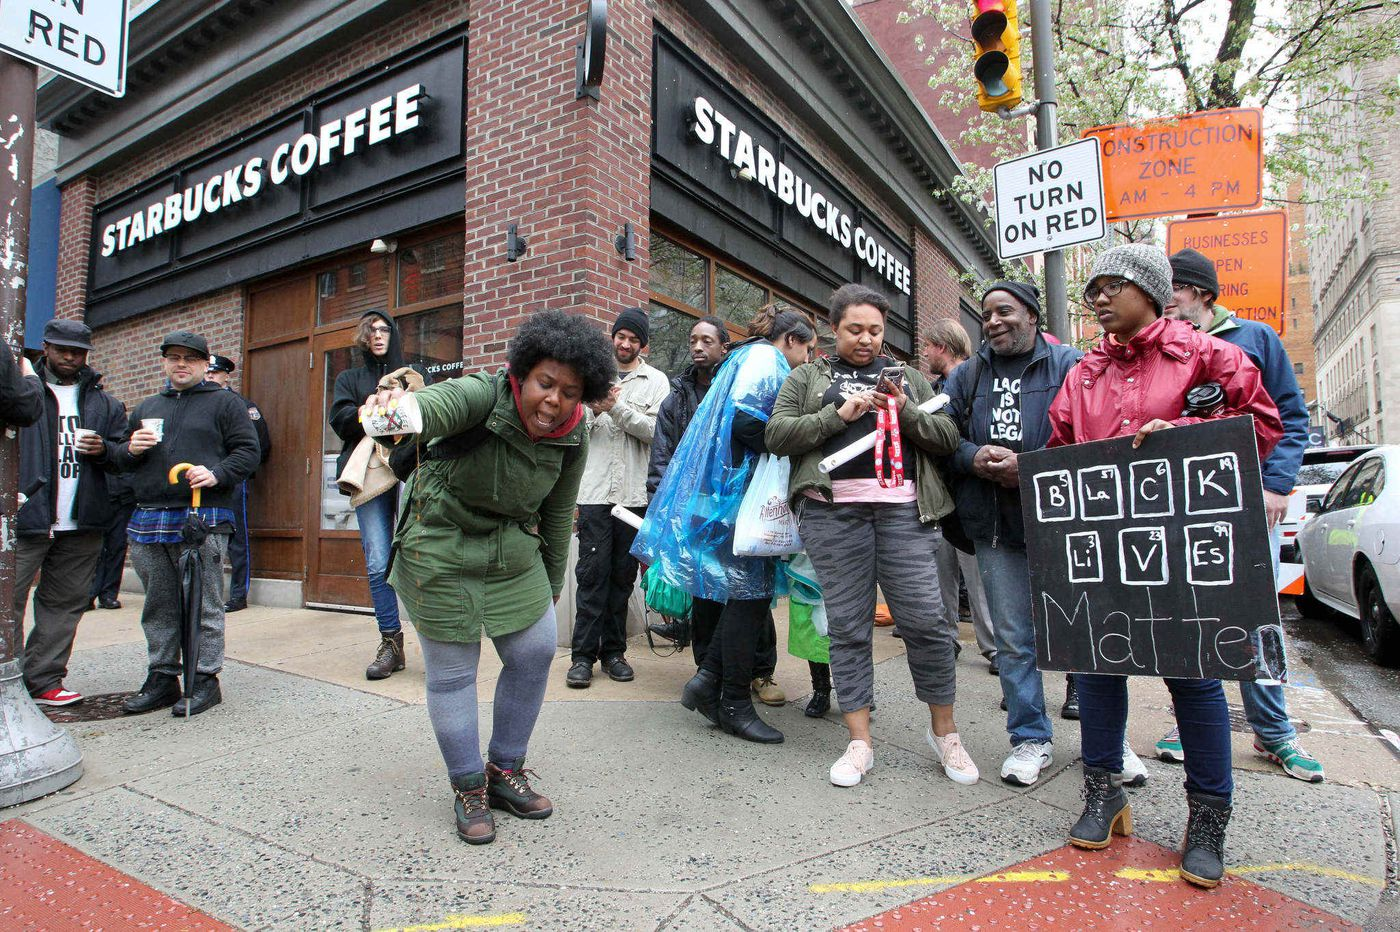 One year later: A timeline of controversy and progress since the Starbucks arrests seen 'round the world